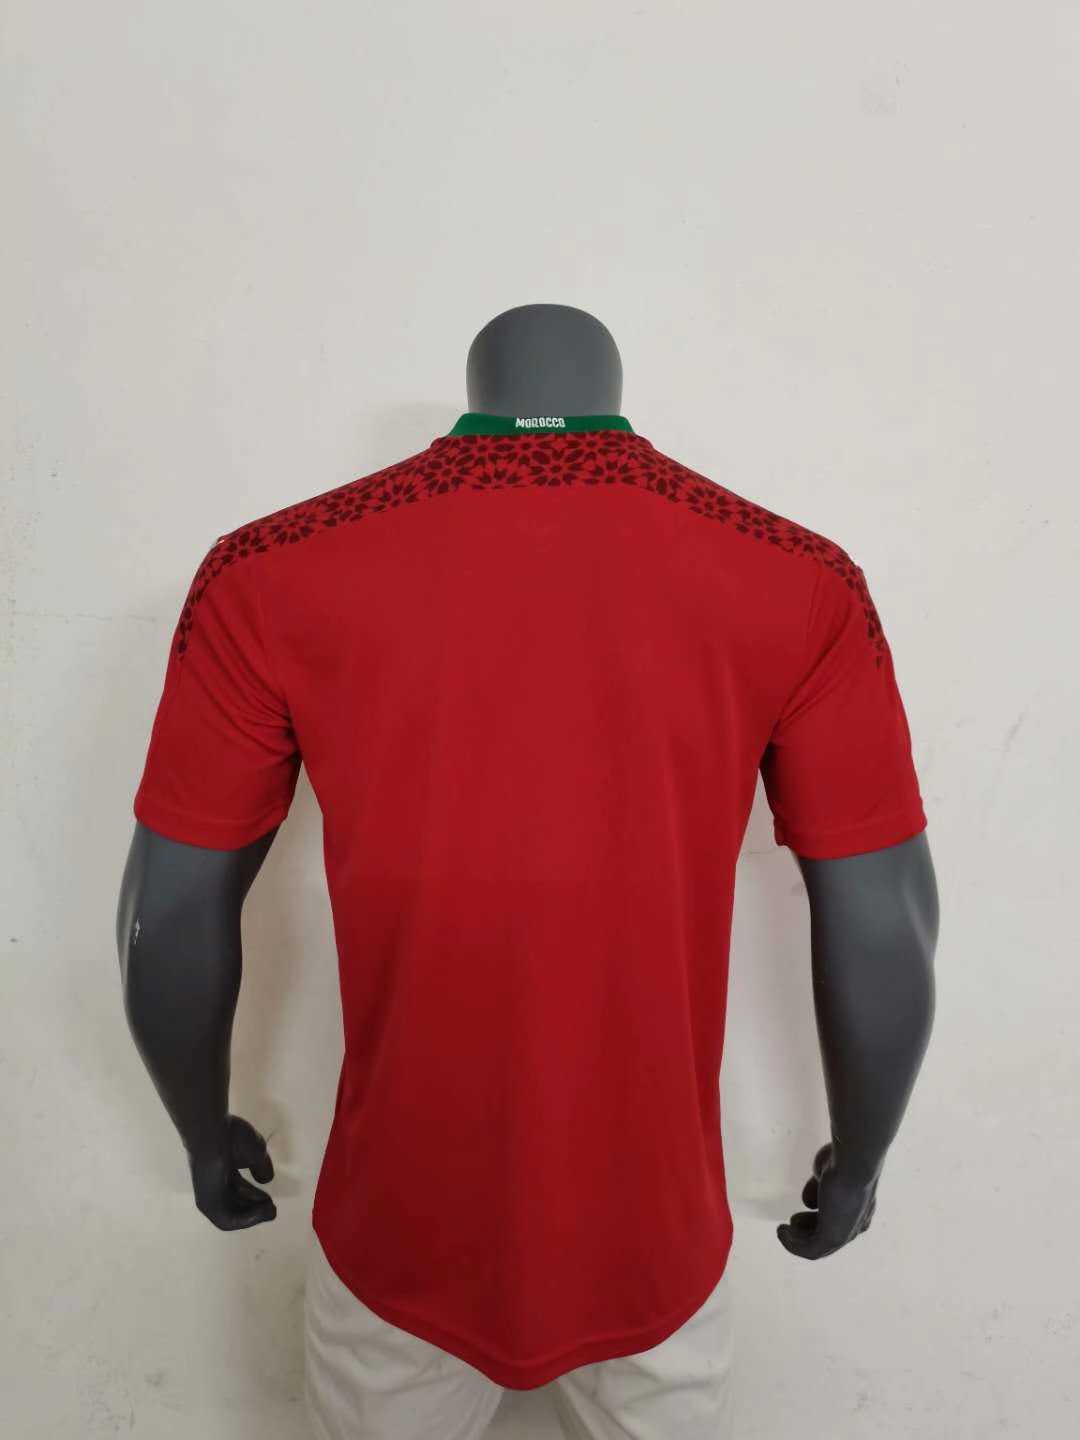 2020/2021 Morocco Home Soccer Jersey Men's